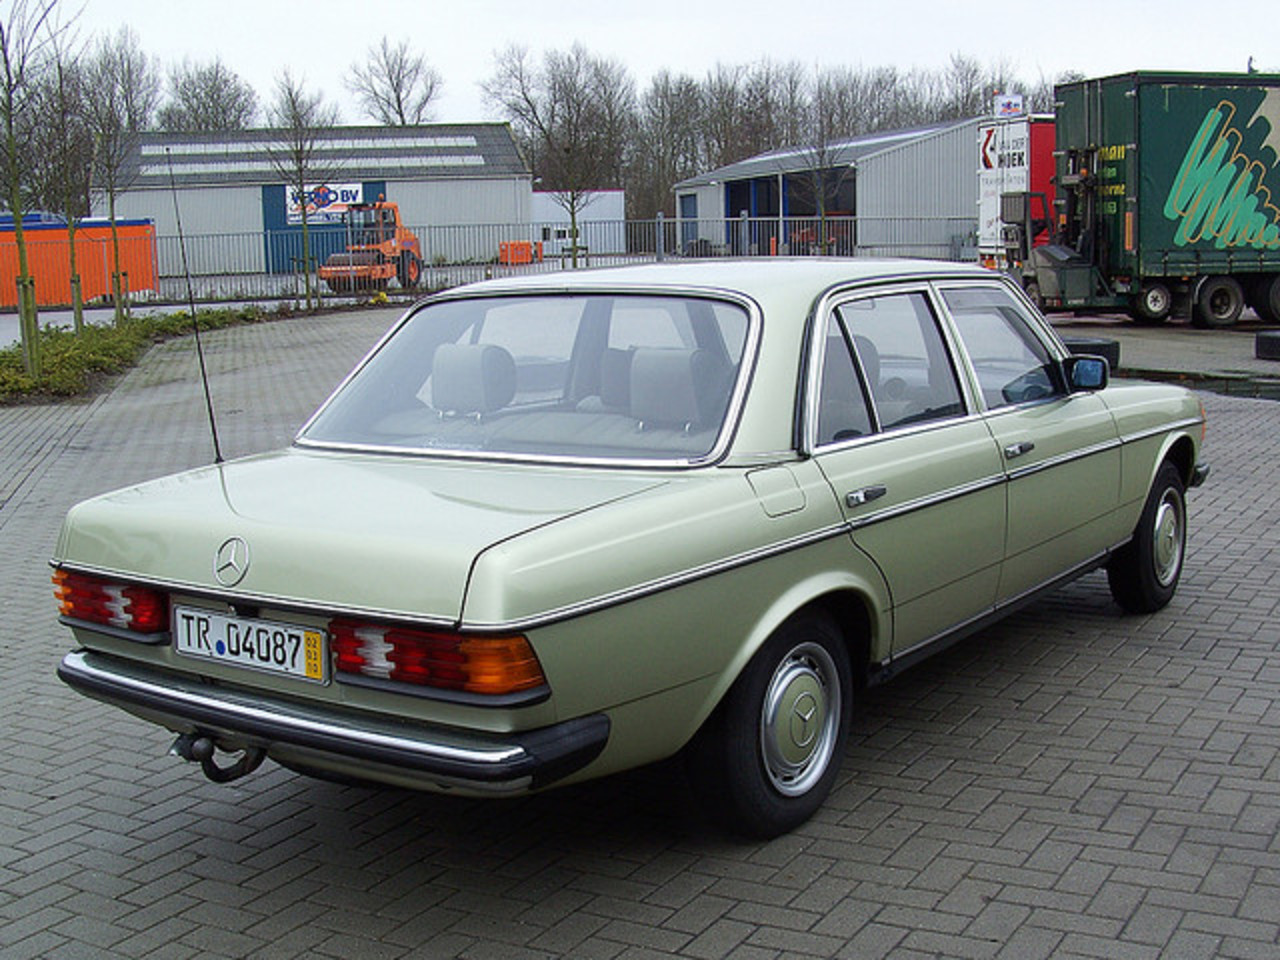 1983 Mercedes Benz 230 E (W123) 3 | Flickr - Photo Sharing!